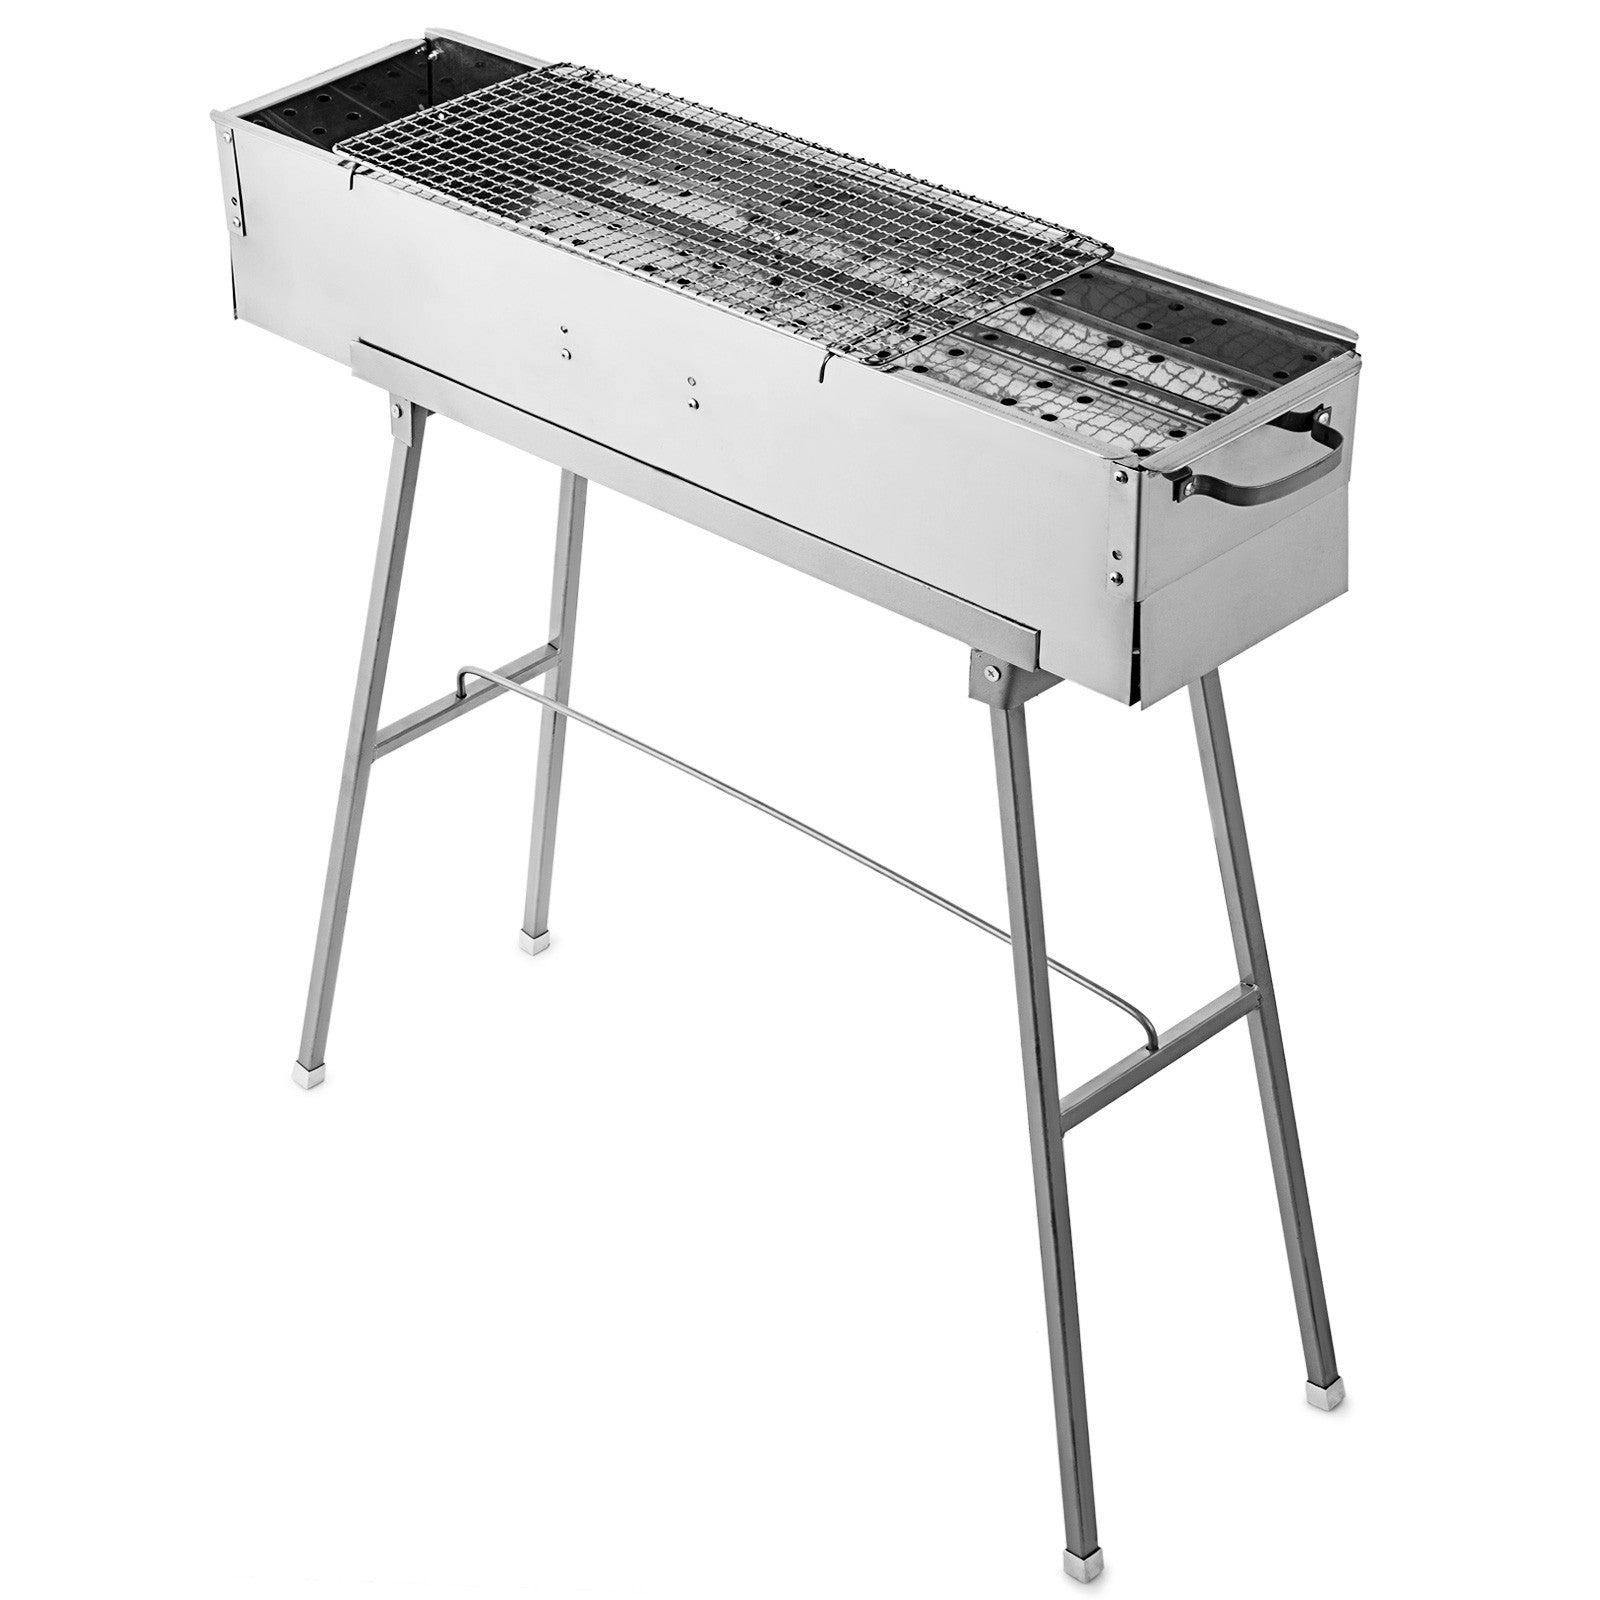 "Charcoal Bbq Grill 32"" X 8"" Folded Portable Stainless Steel Outdoor Barbecue"